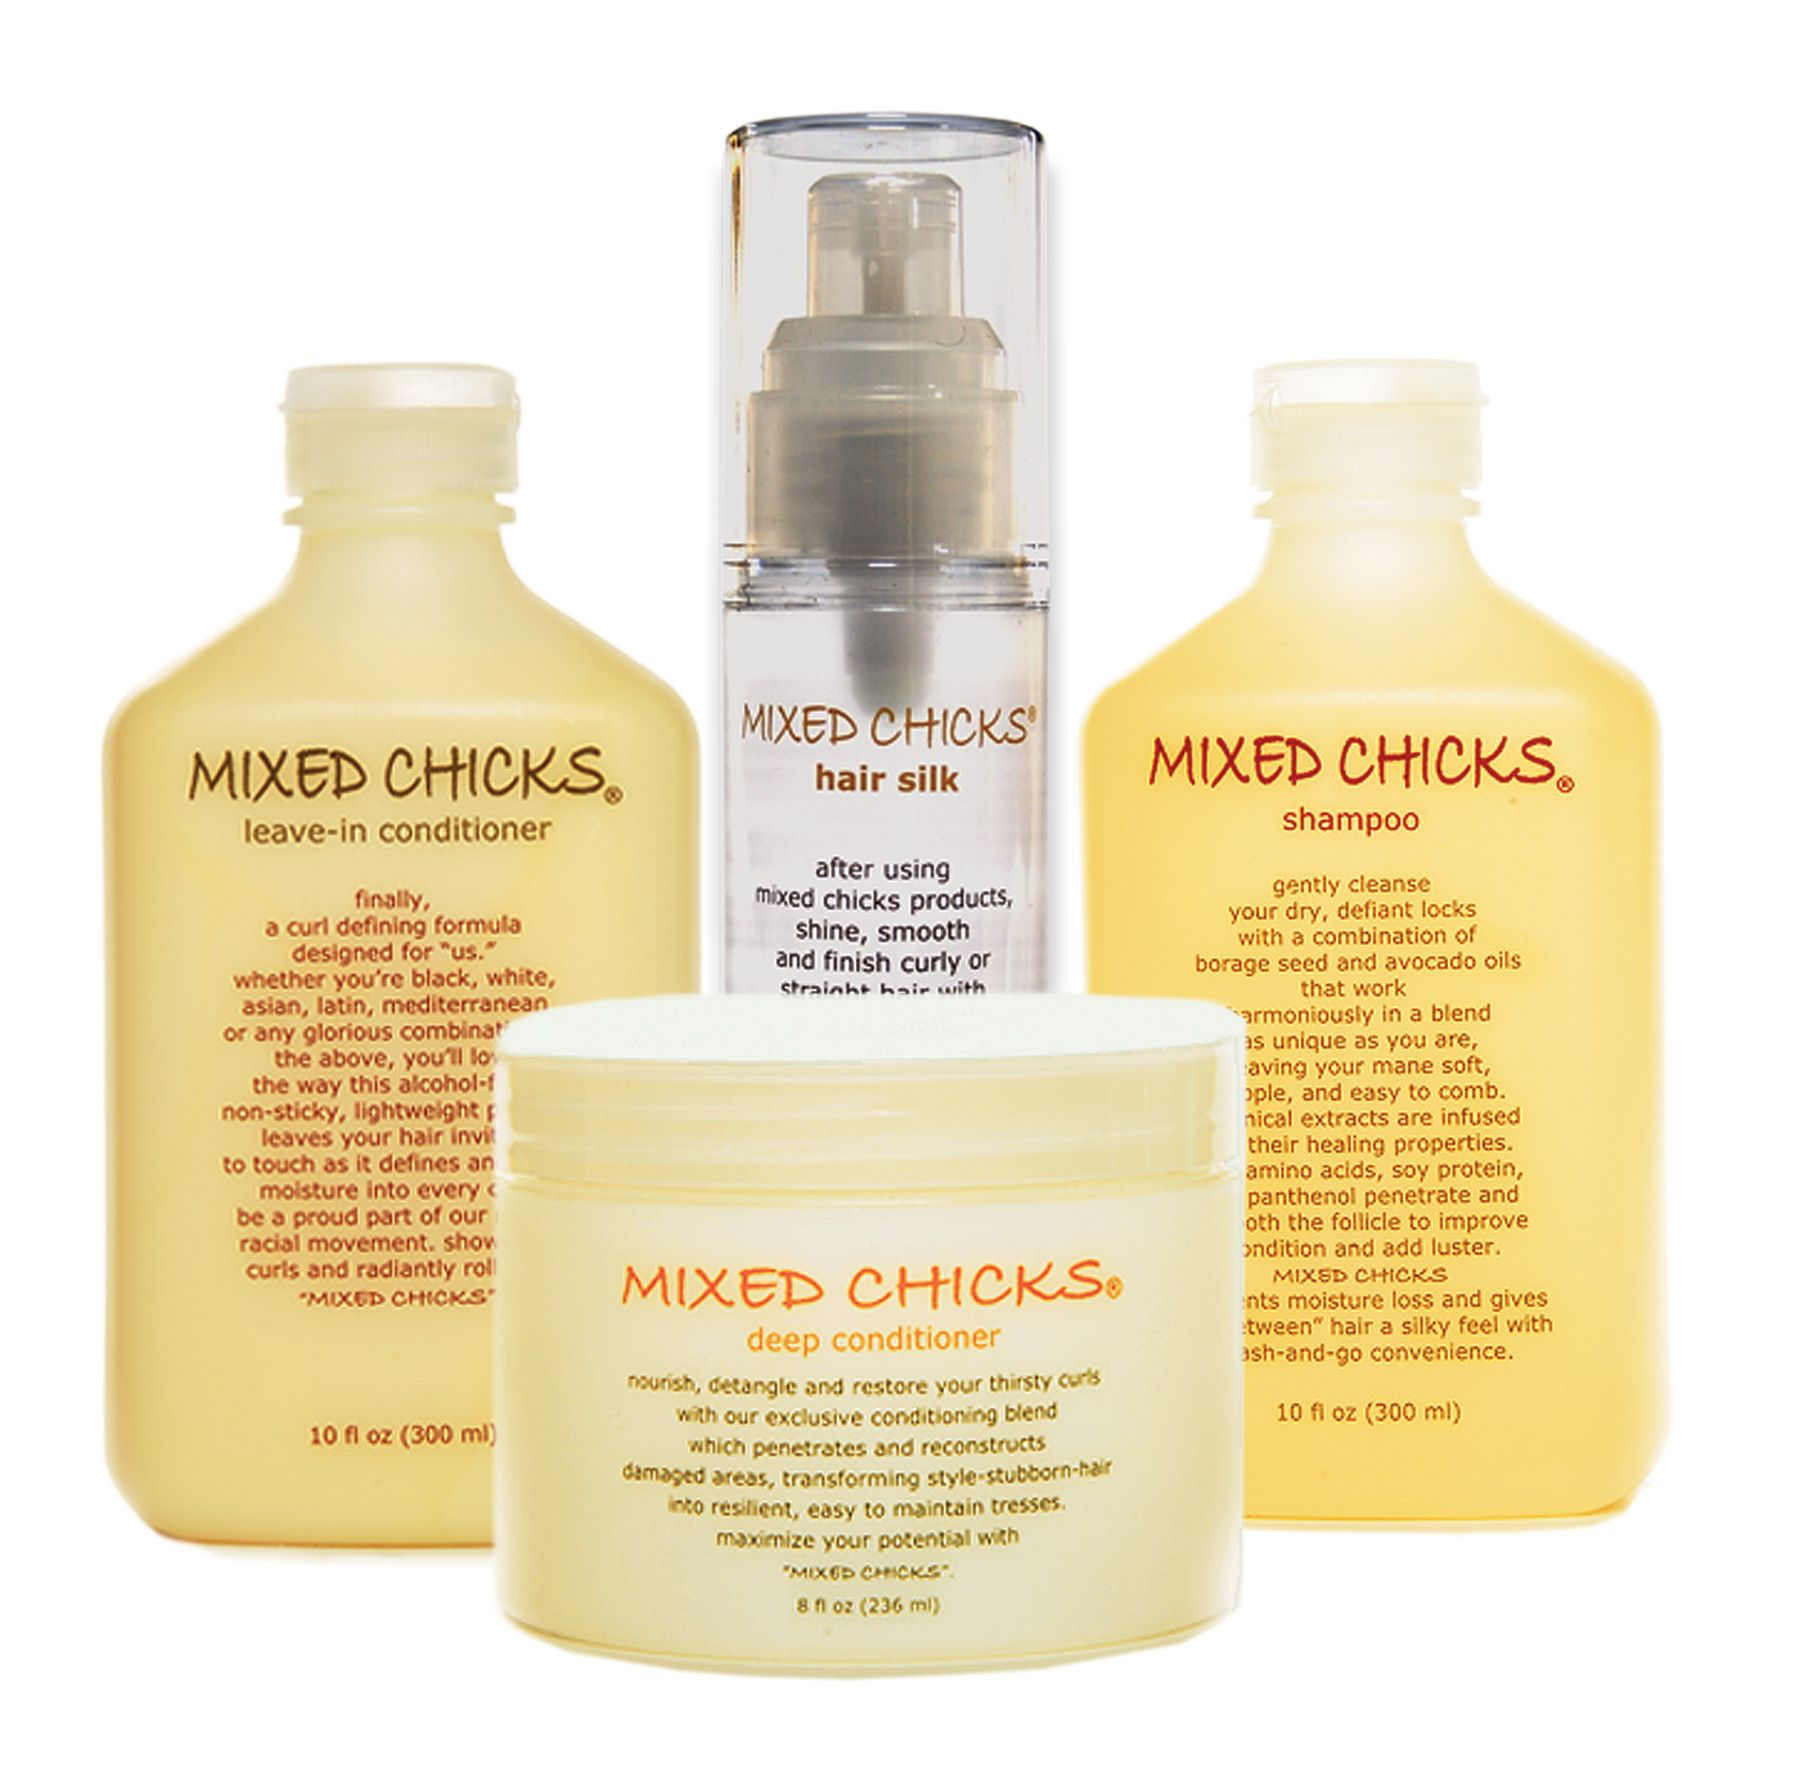 LeaveIn Conditioner Mixed chicks hair products, Mixed